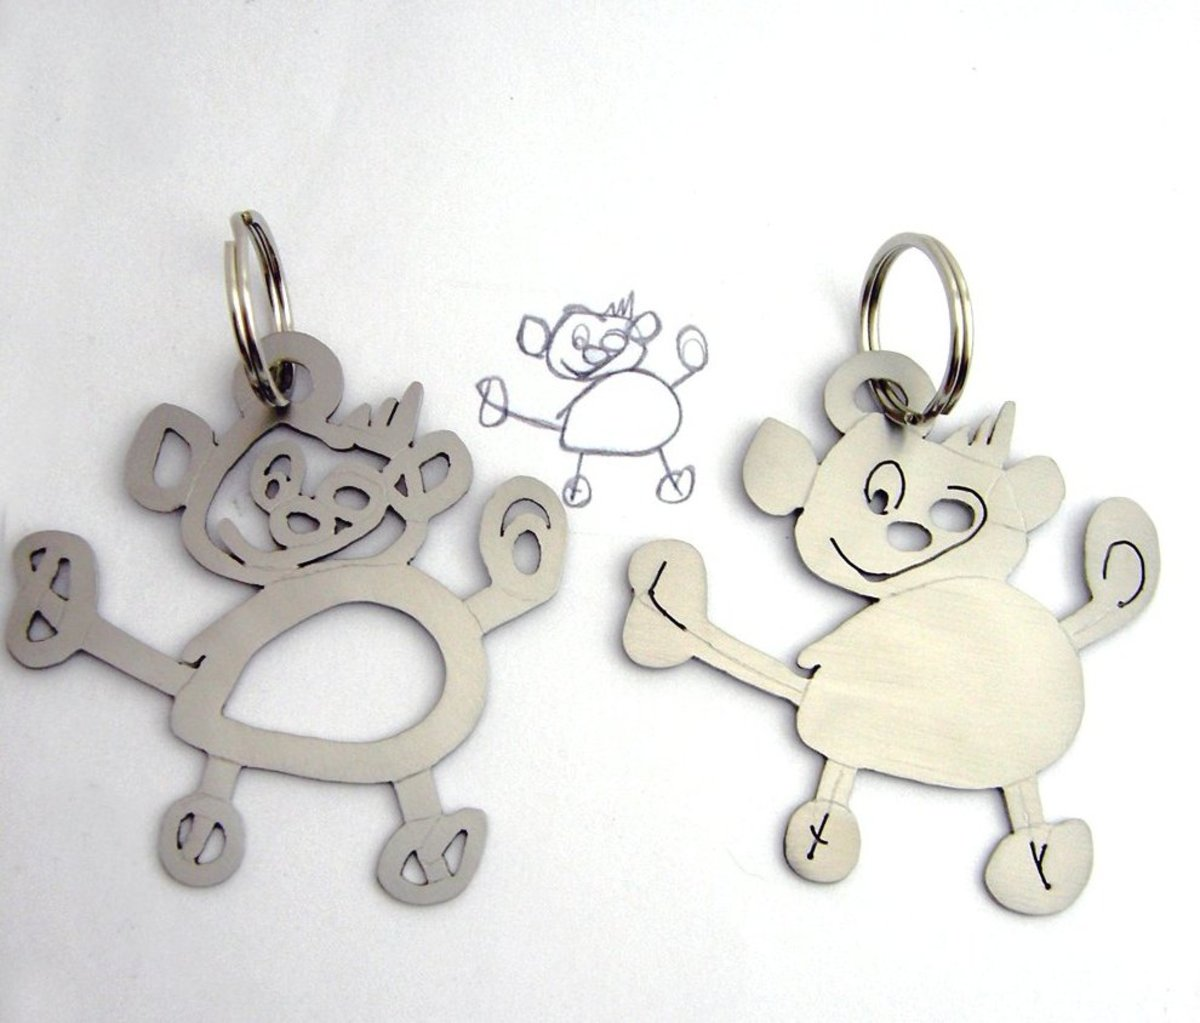 Moms can turn their little ones' doodles into keepsake key rings using polymer clay. What a clever DIY gift for Father's Day.